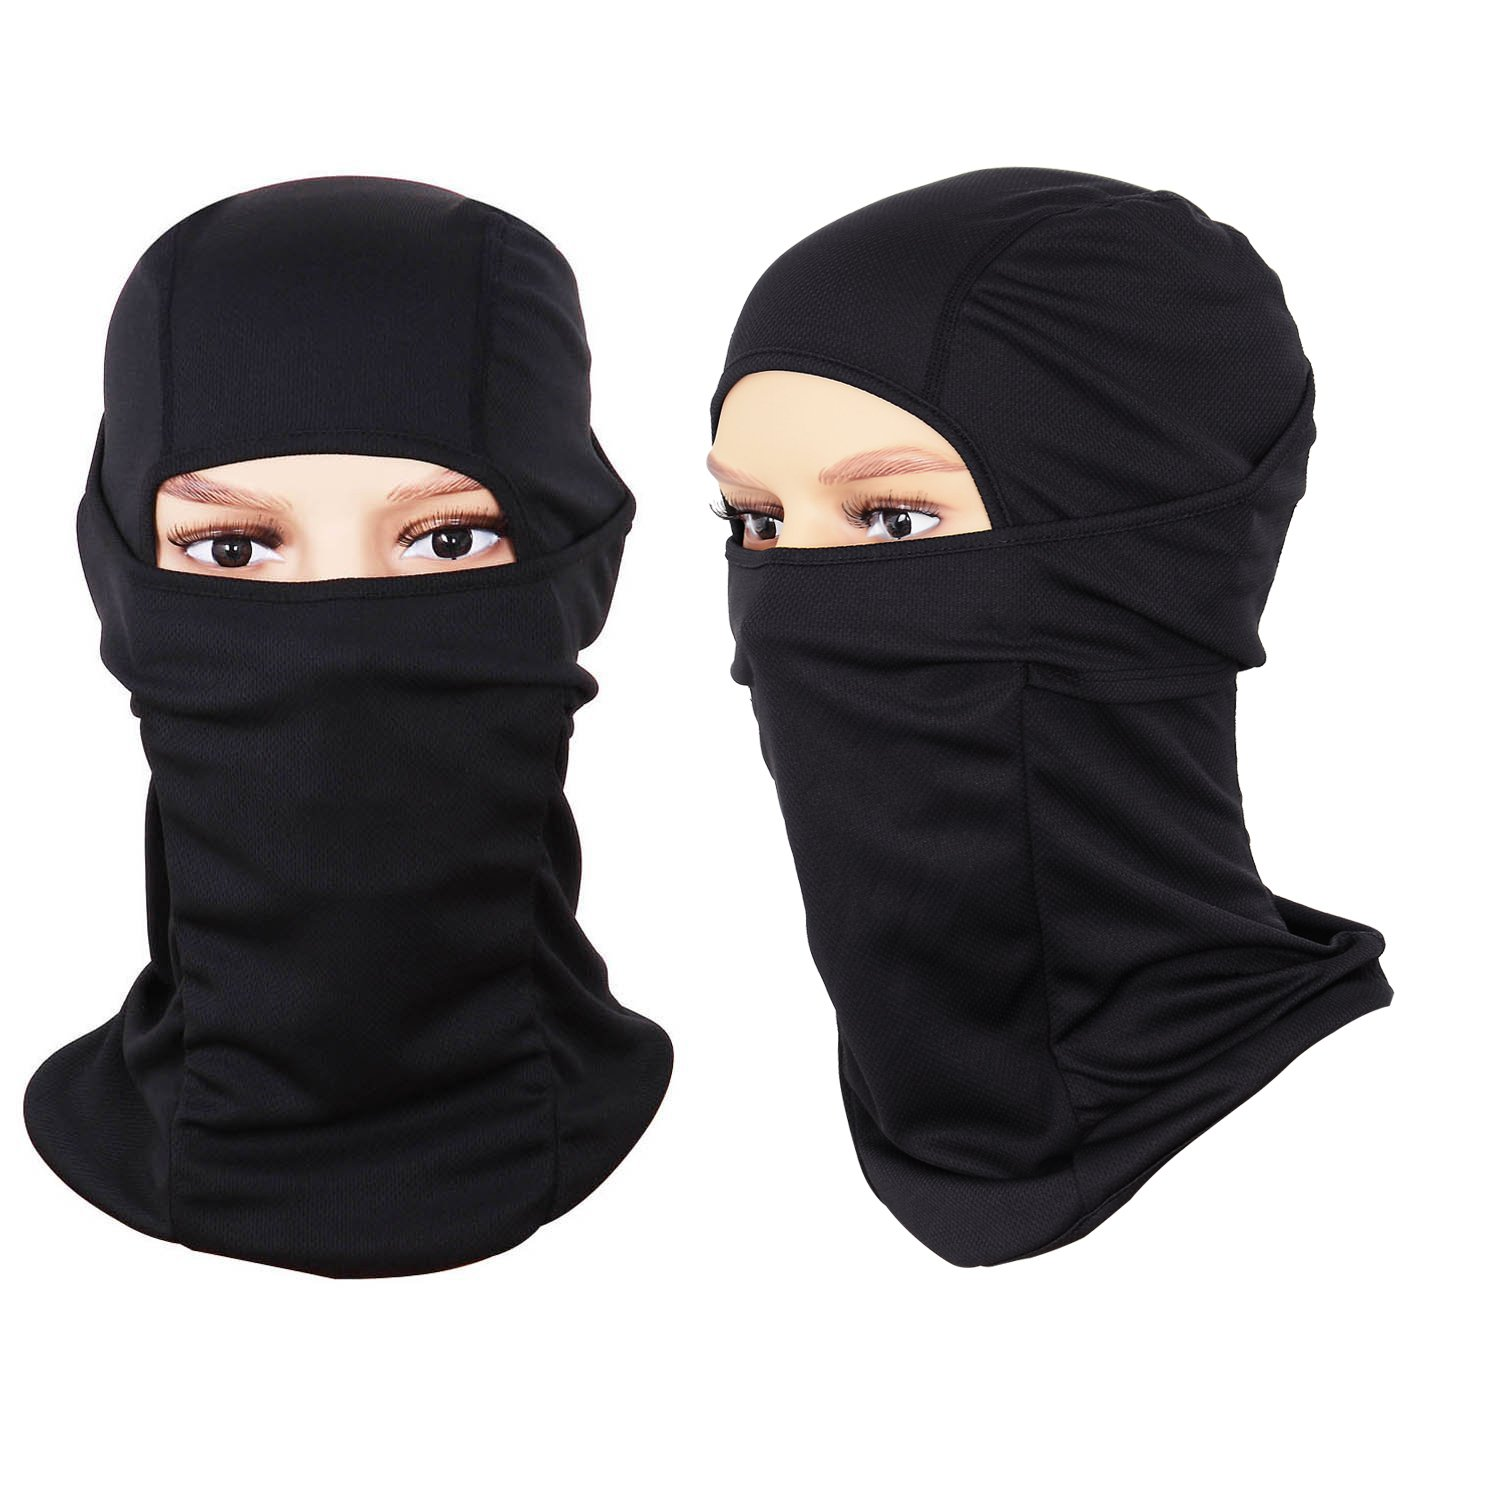 Sports Balaclava 2-Pack Face Mask Motorcycle Helmets Liner Ski Gear Mountain Neck Gaiter by The Friendly Swede (Black)